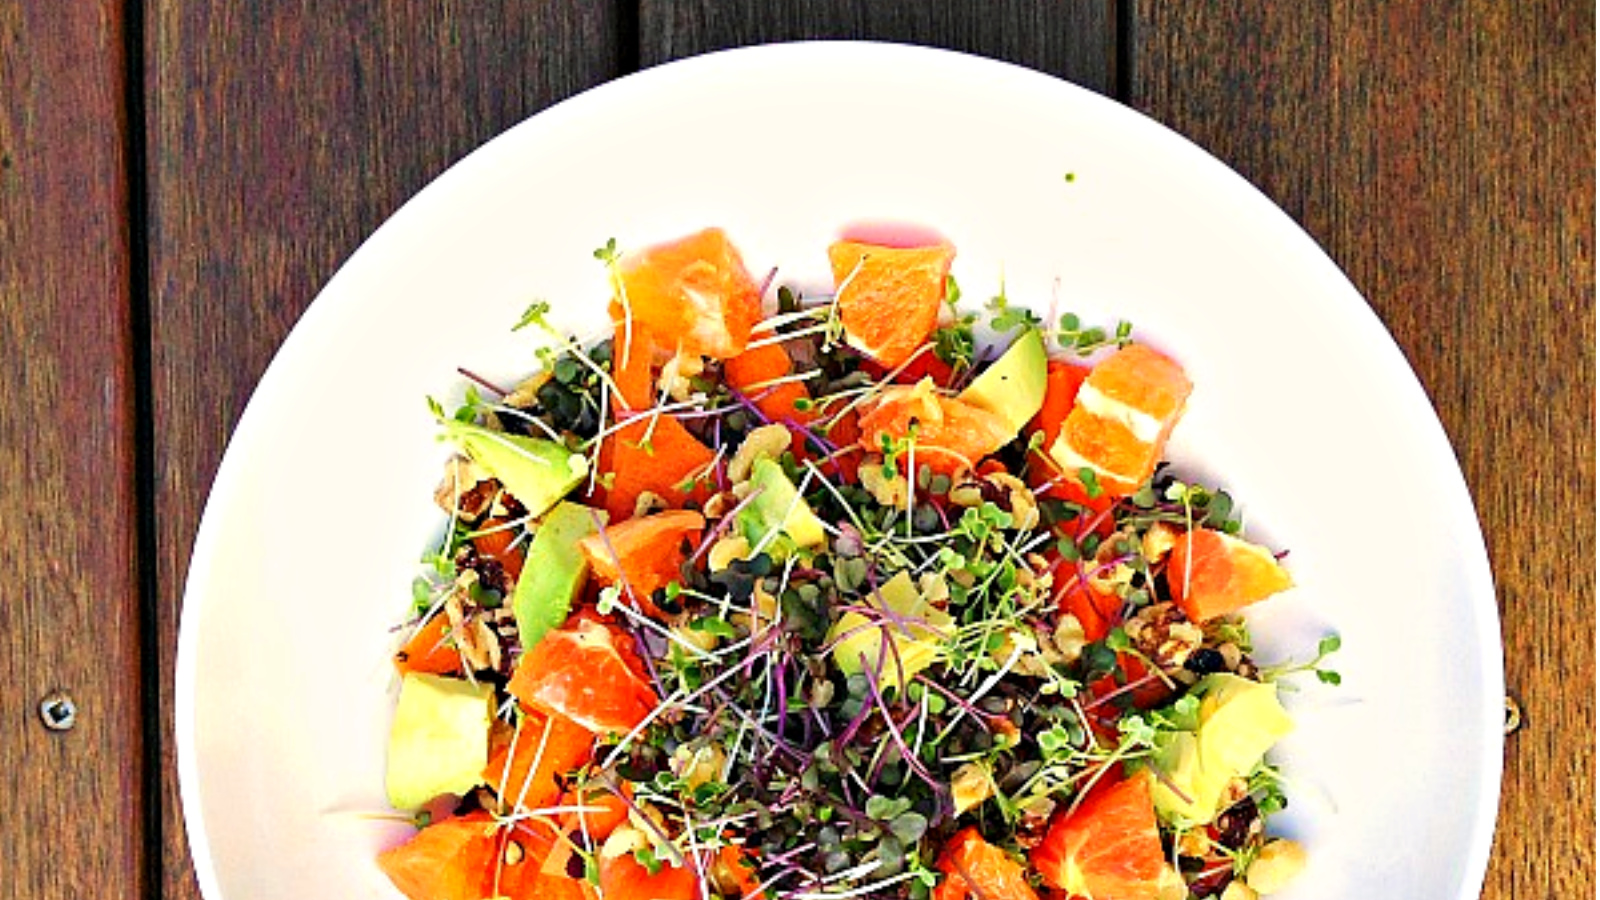 A mouthwatering microgreen salad you will love.